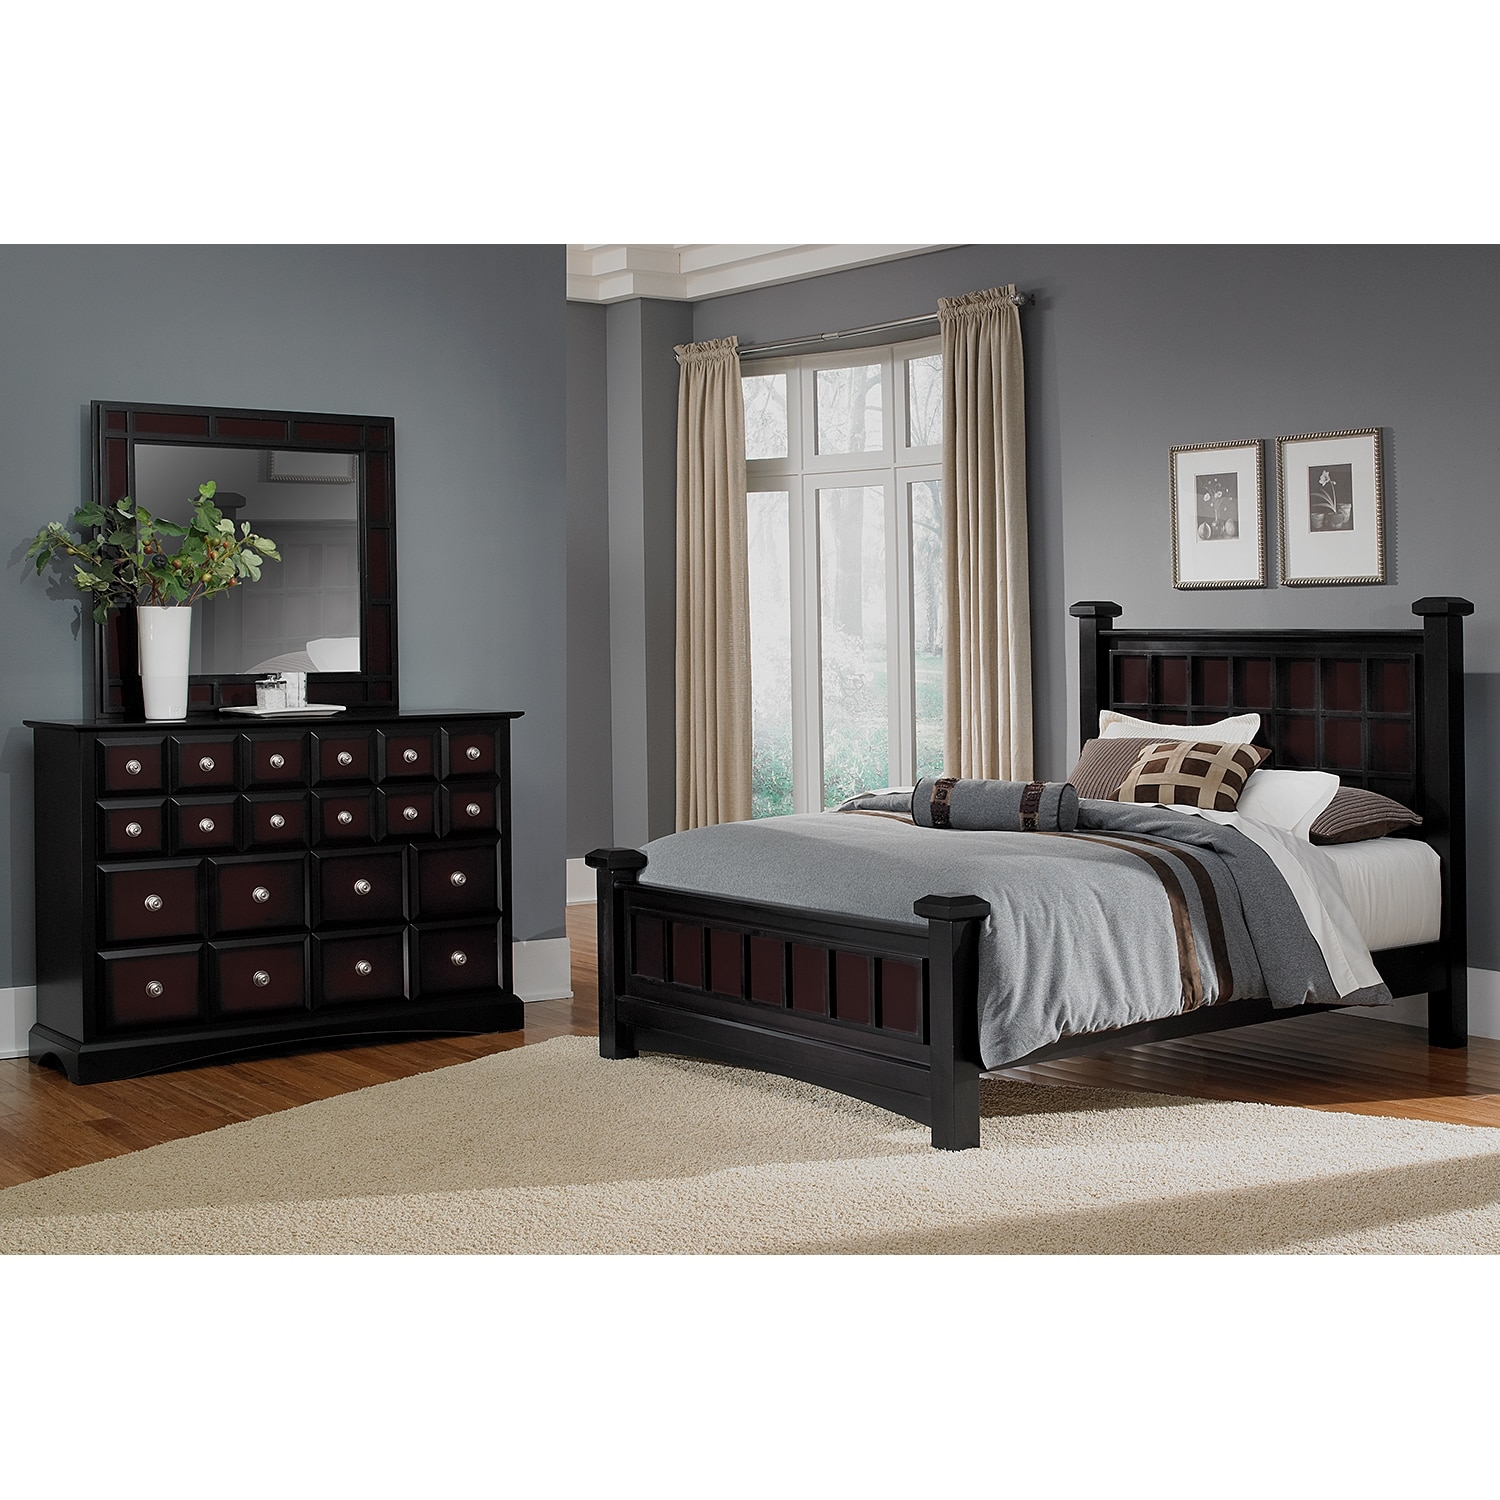 bed furniture sets winchester 5 king bedroom set black and burnished 10244